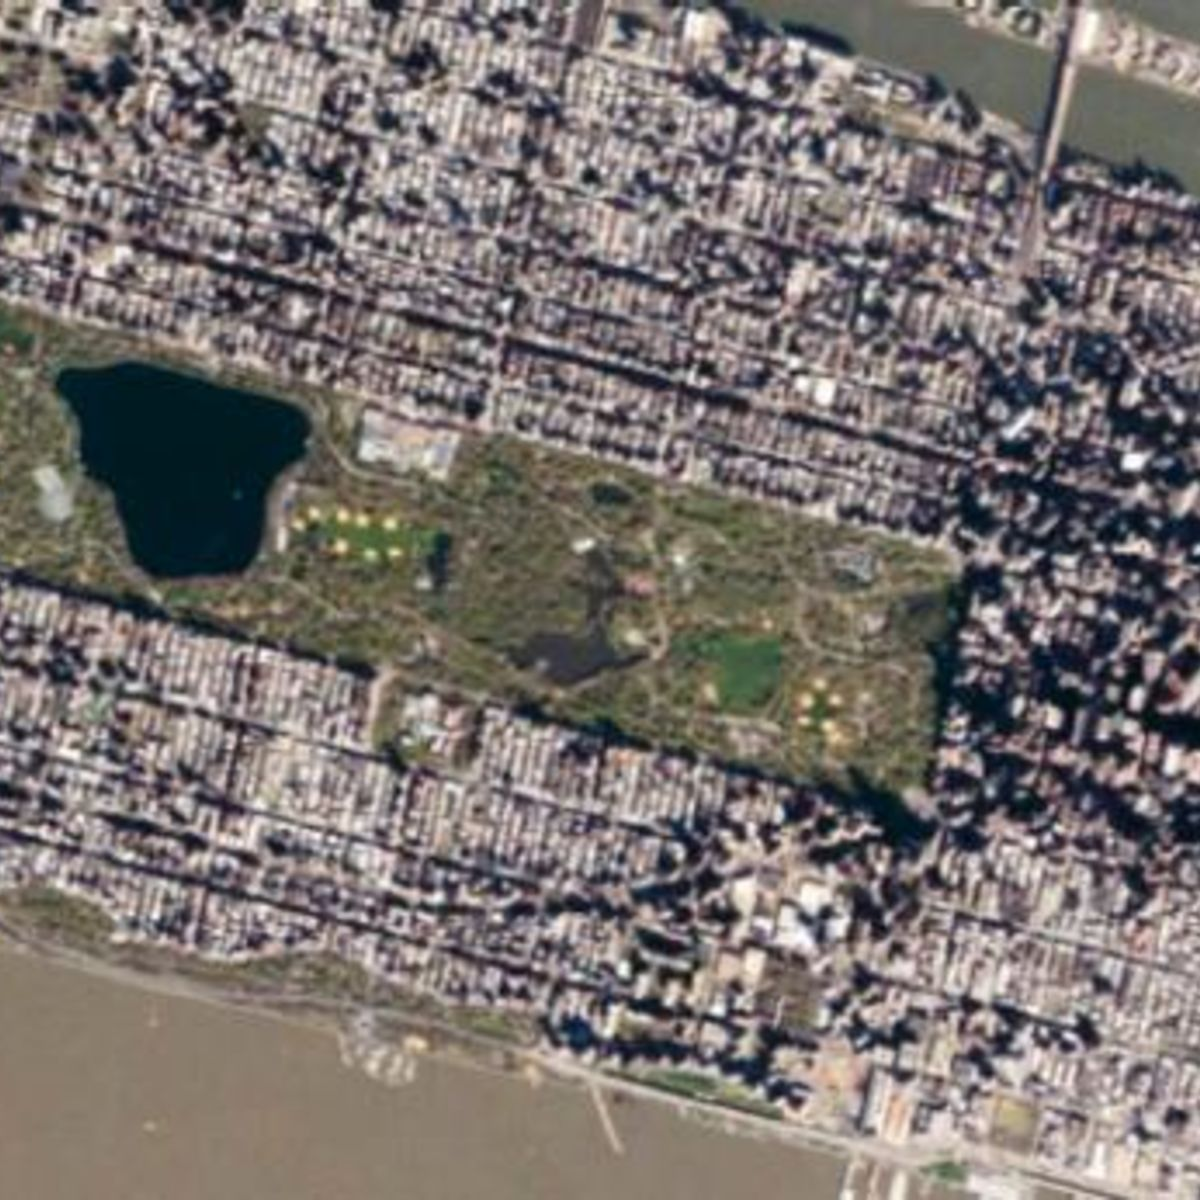 iss_nyc_zoom.jpg.CROP.rectangle-large.jpg